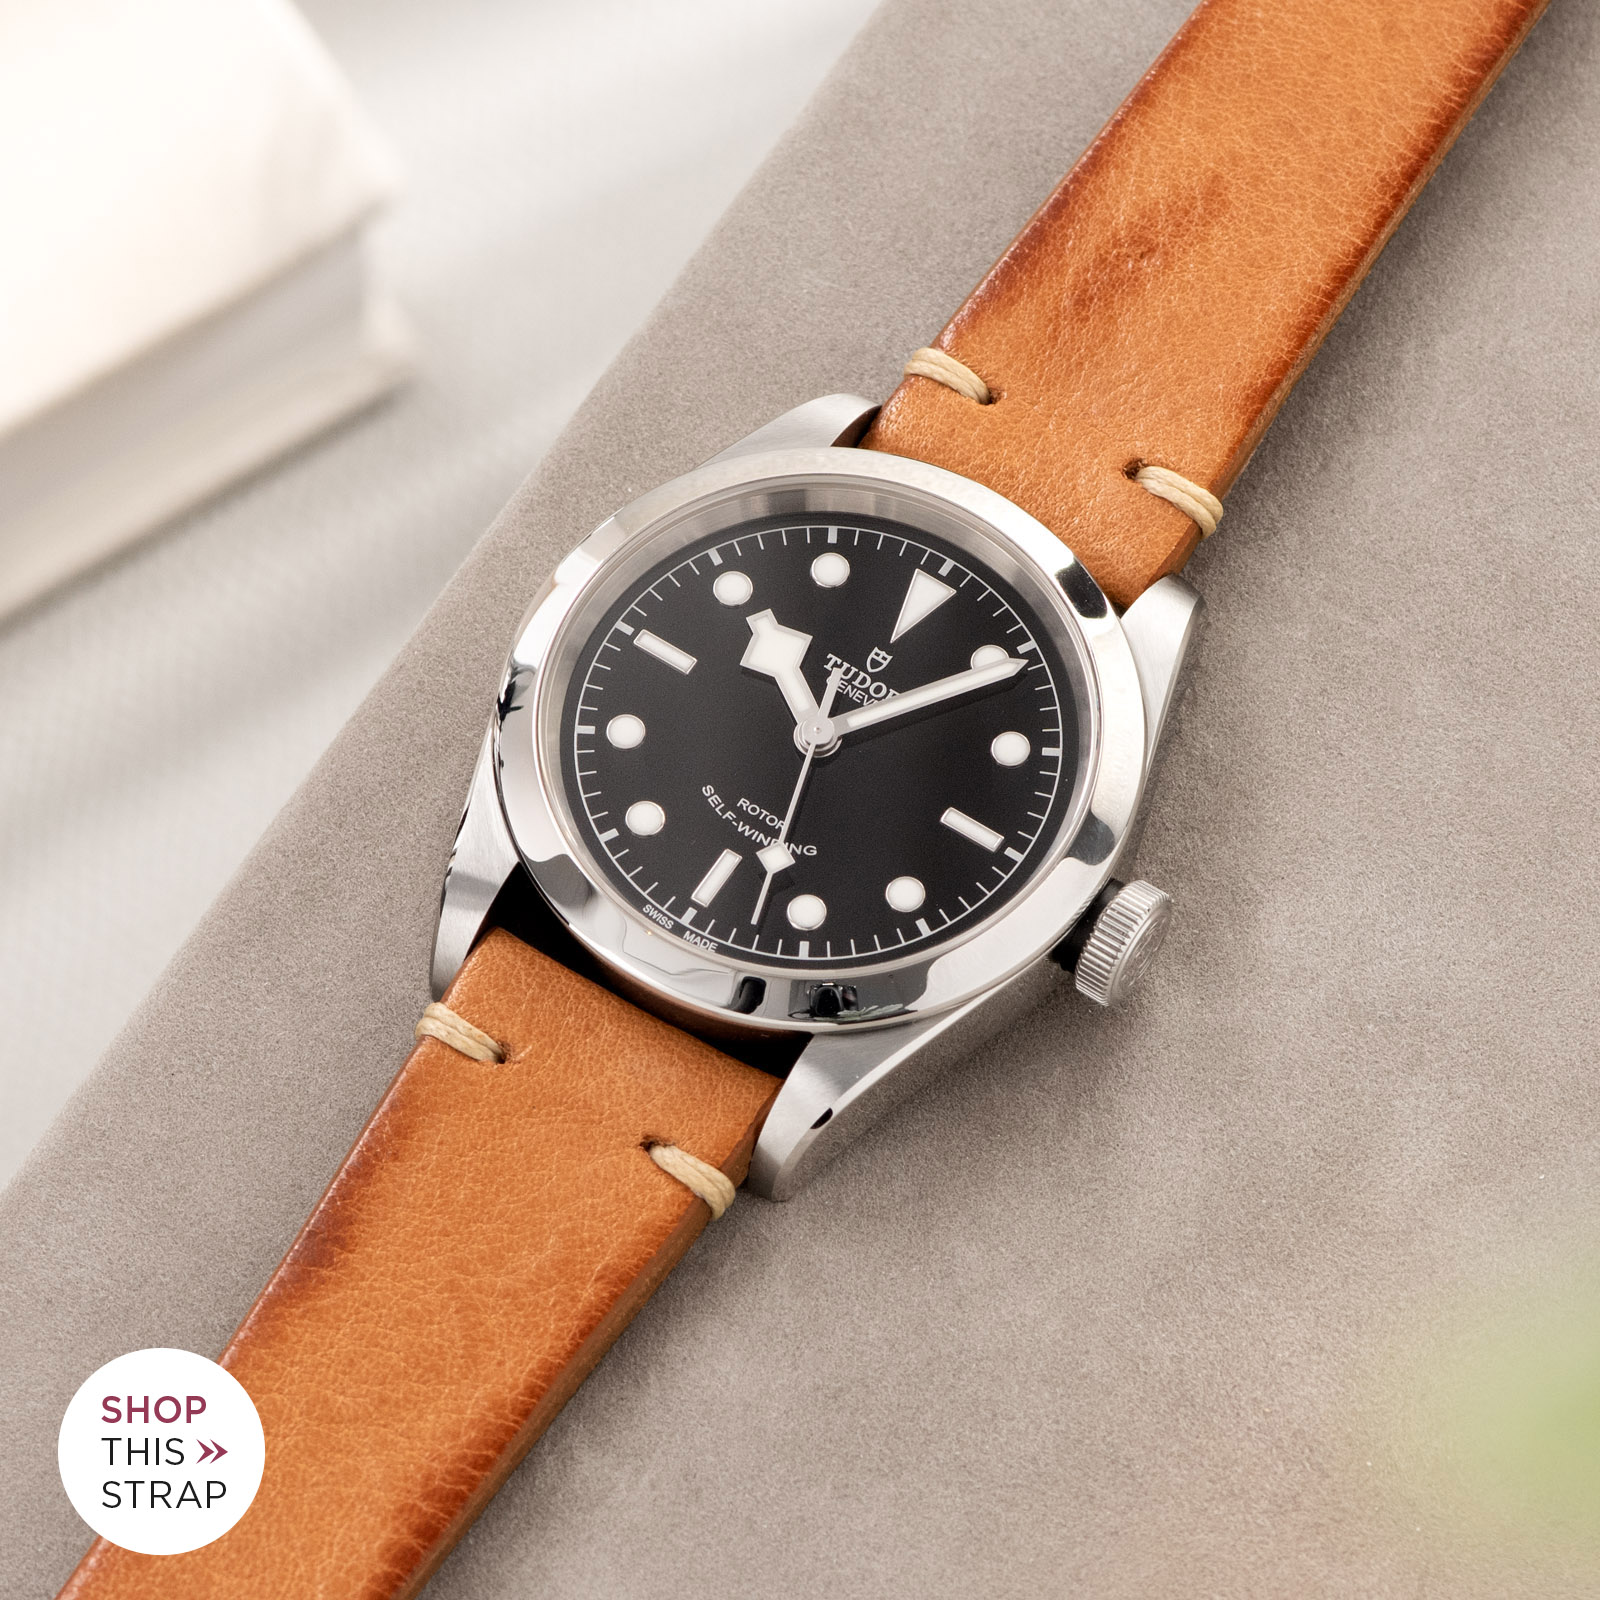 Bulang and Sons_Strap Guide_Tudor Heritage BlackBay 411_Caramel Brown Leather Watch Strap